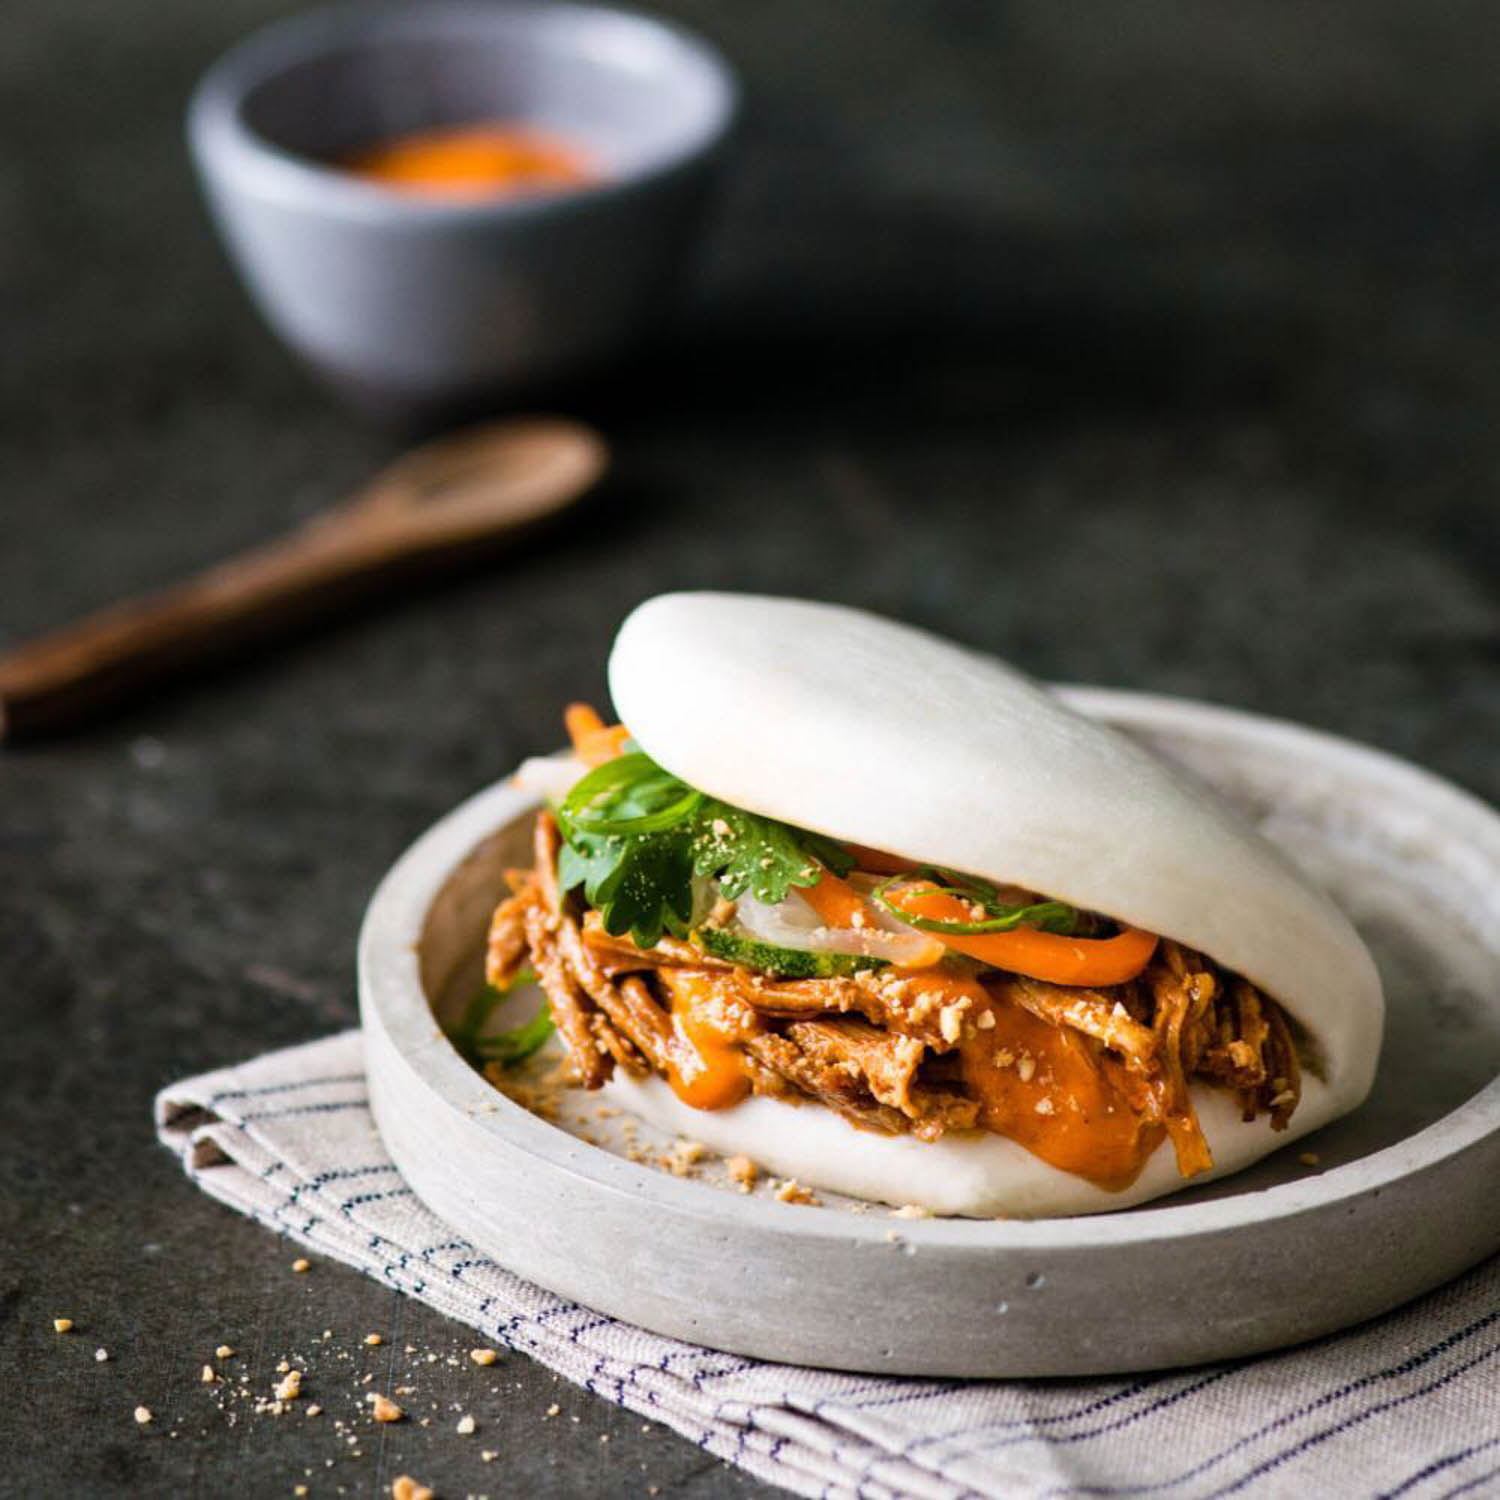 Unique Bao - Pulled pork bao